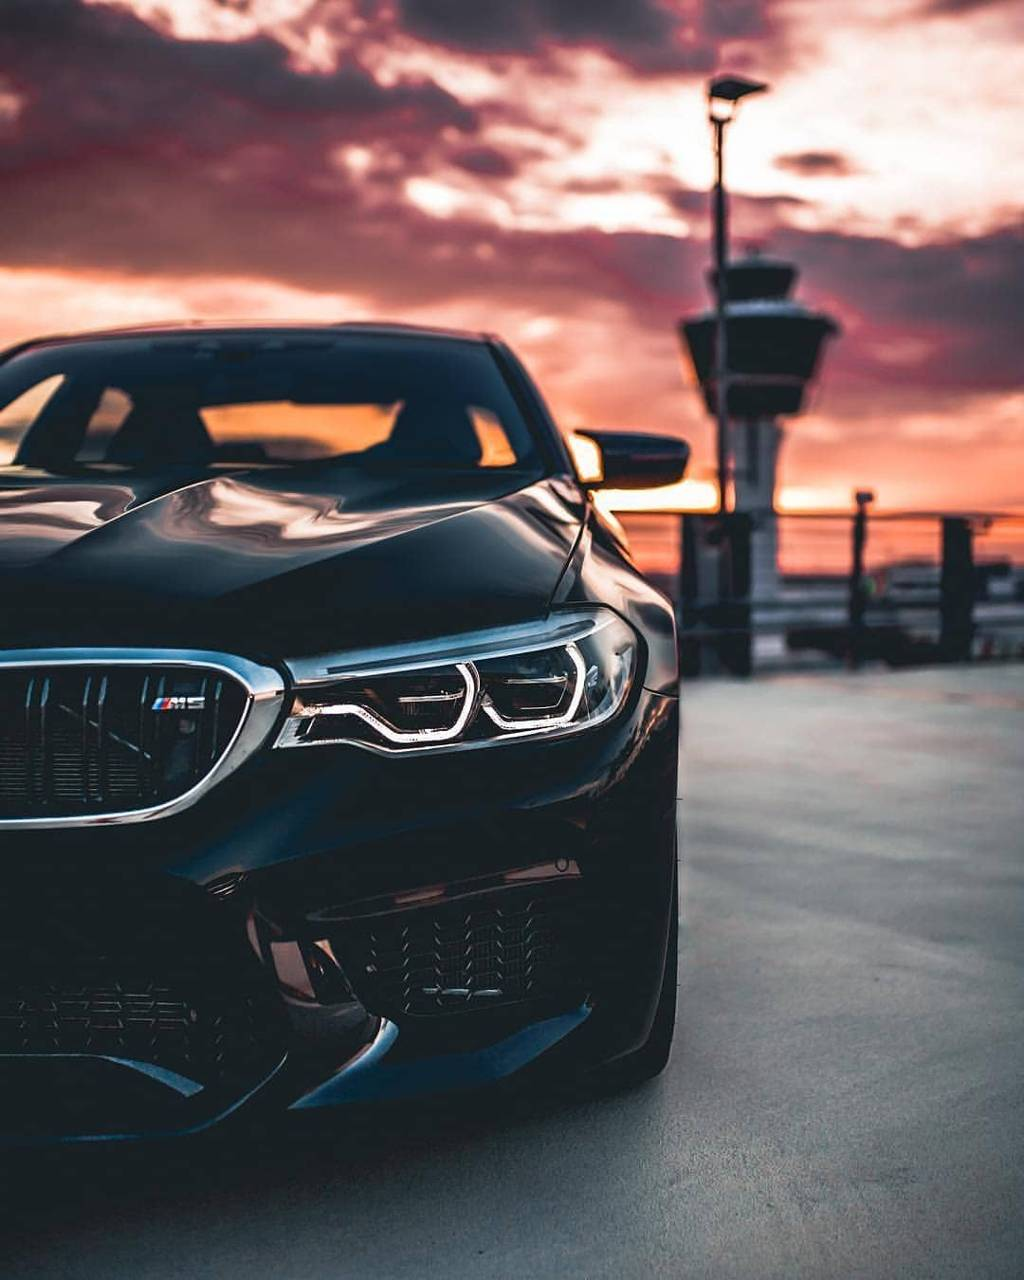 Bmw M5 Wallpaper By P3tr1t 80 Free On Zedge